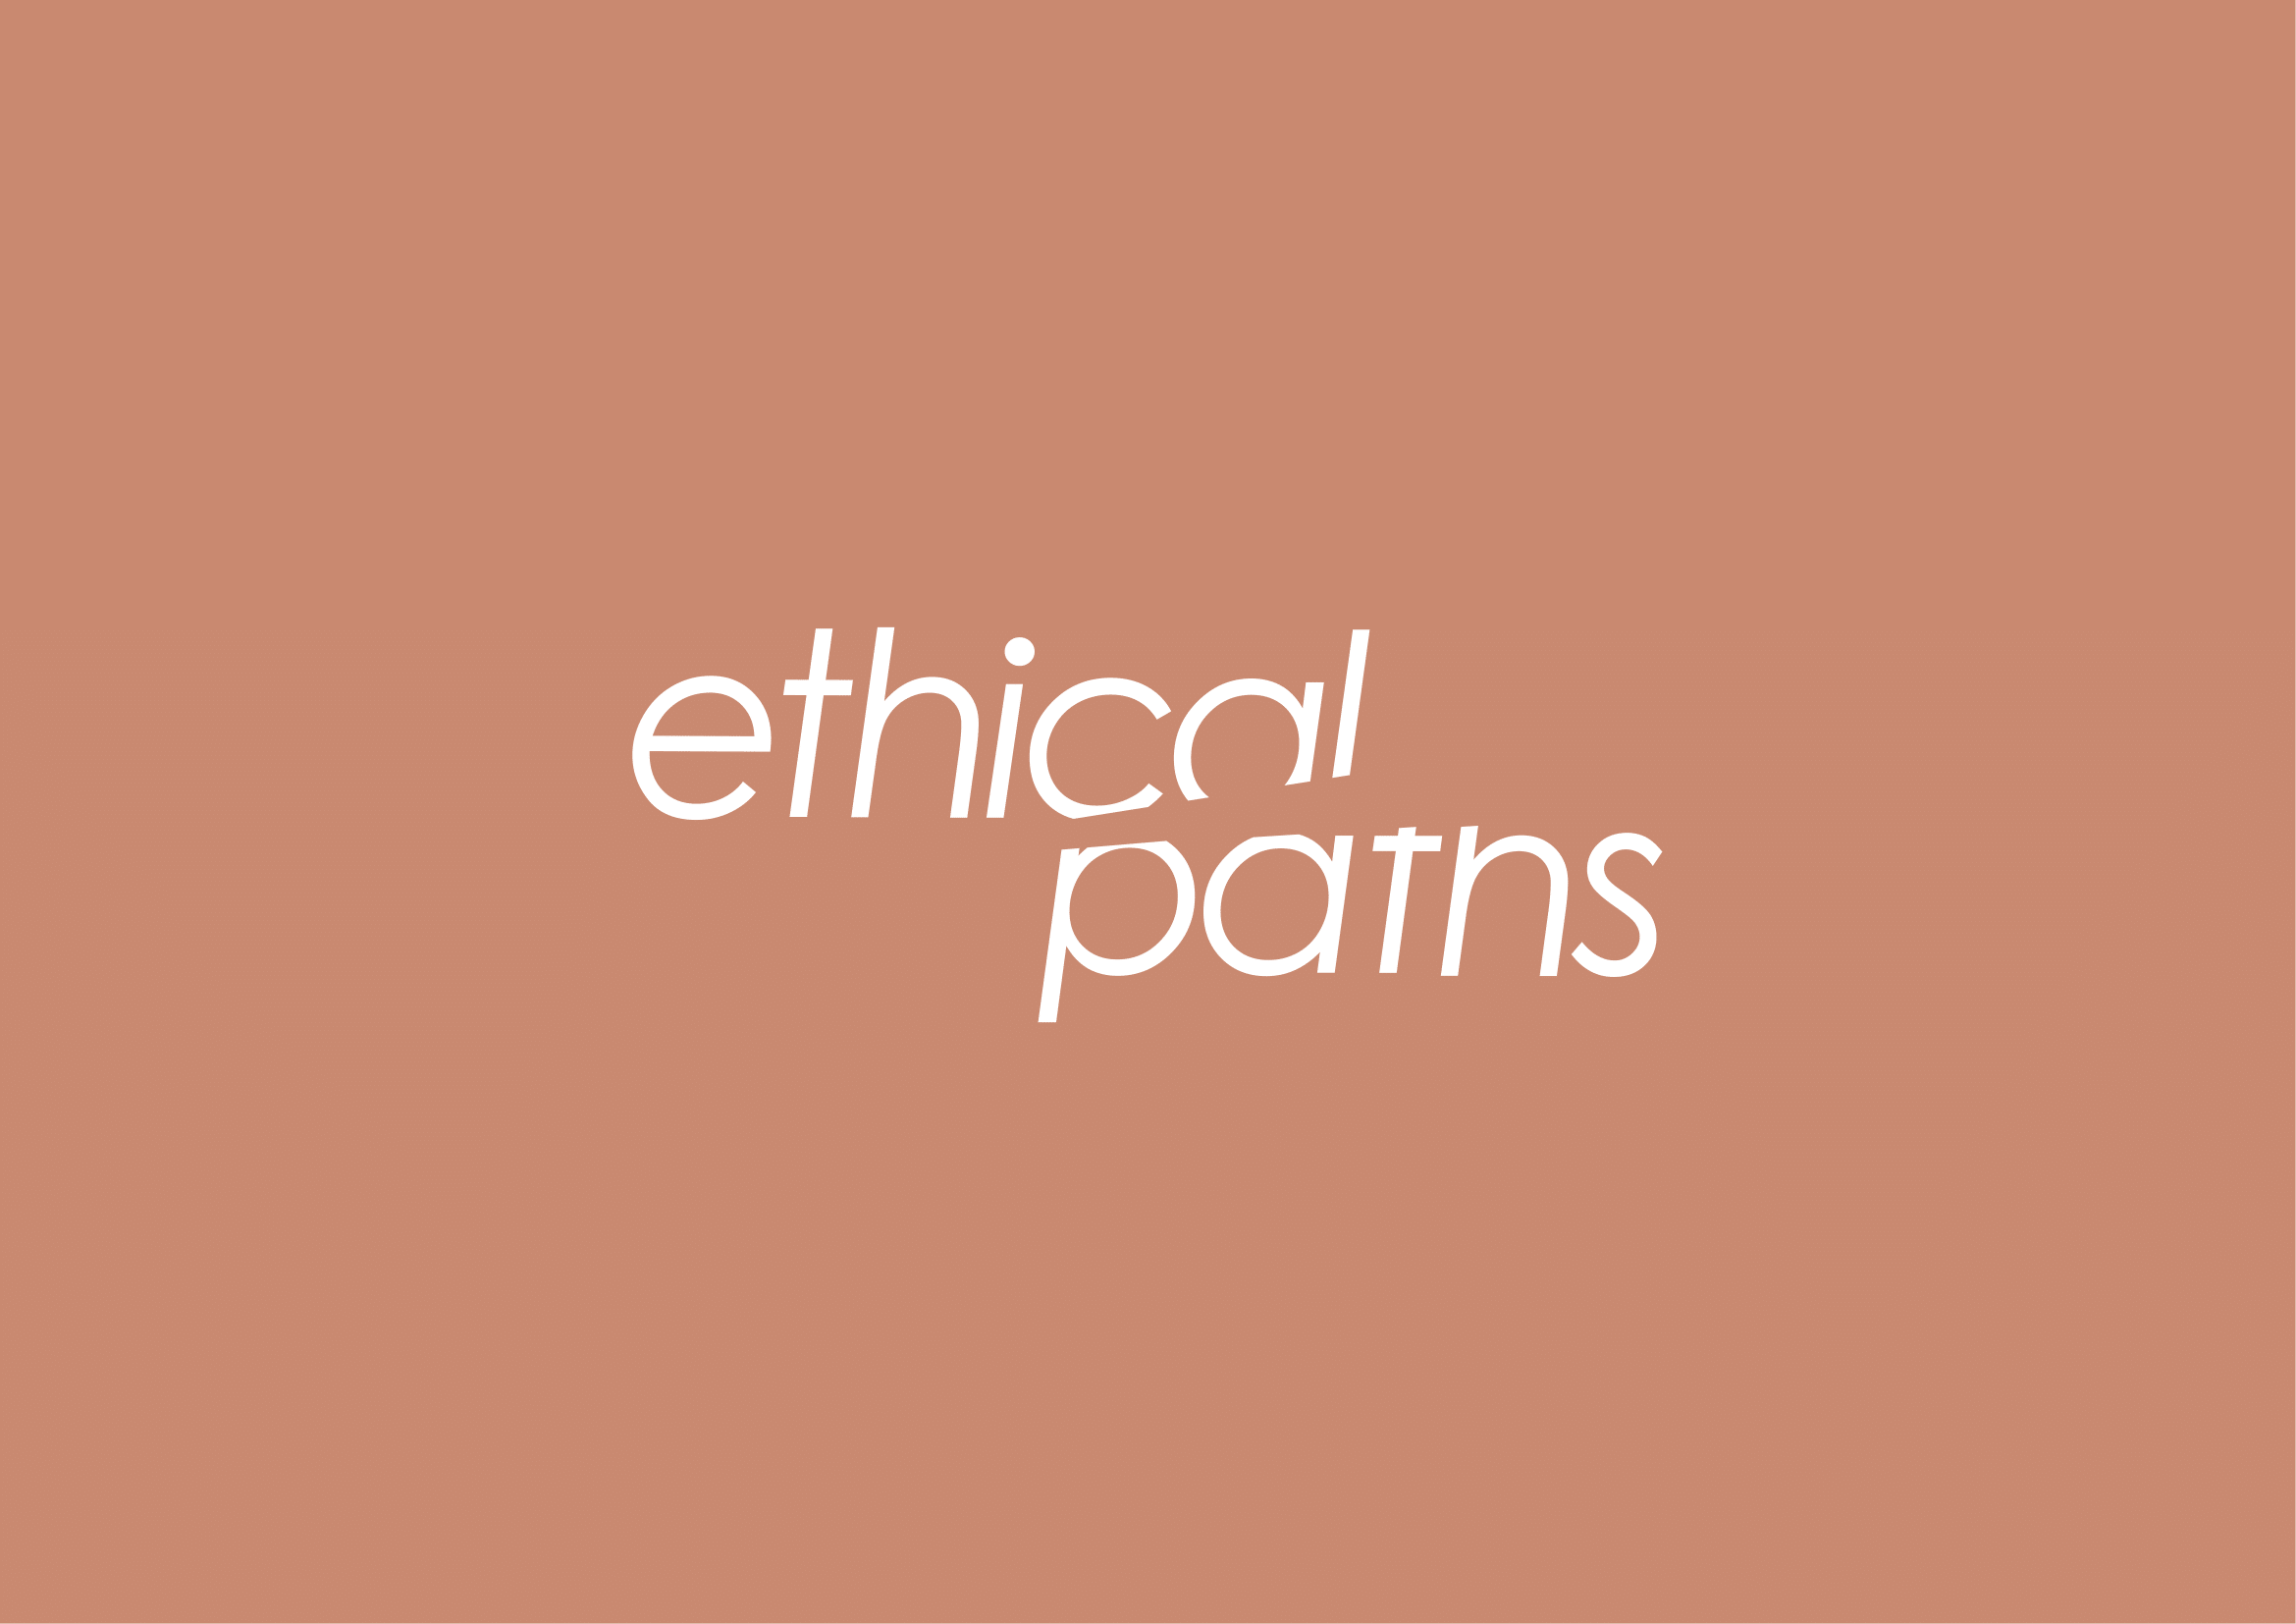 Ethical Paths